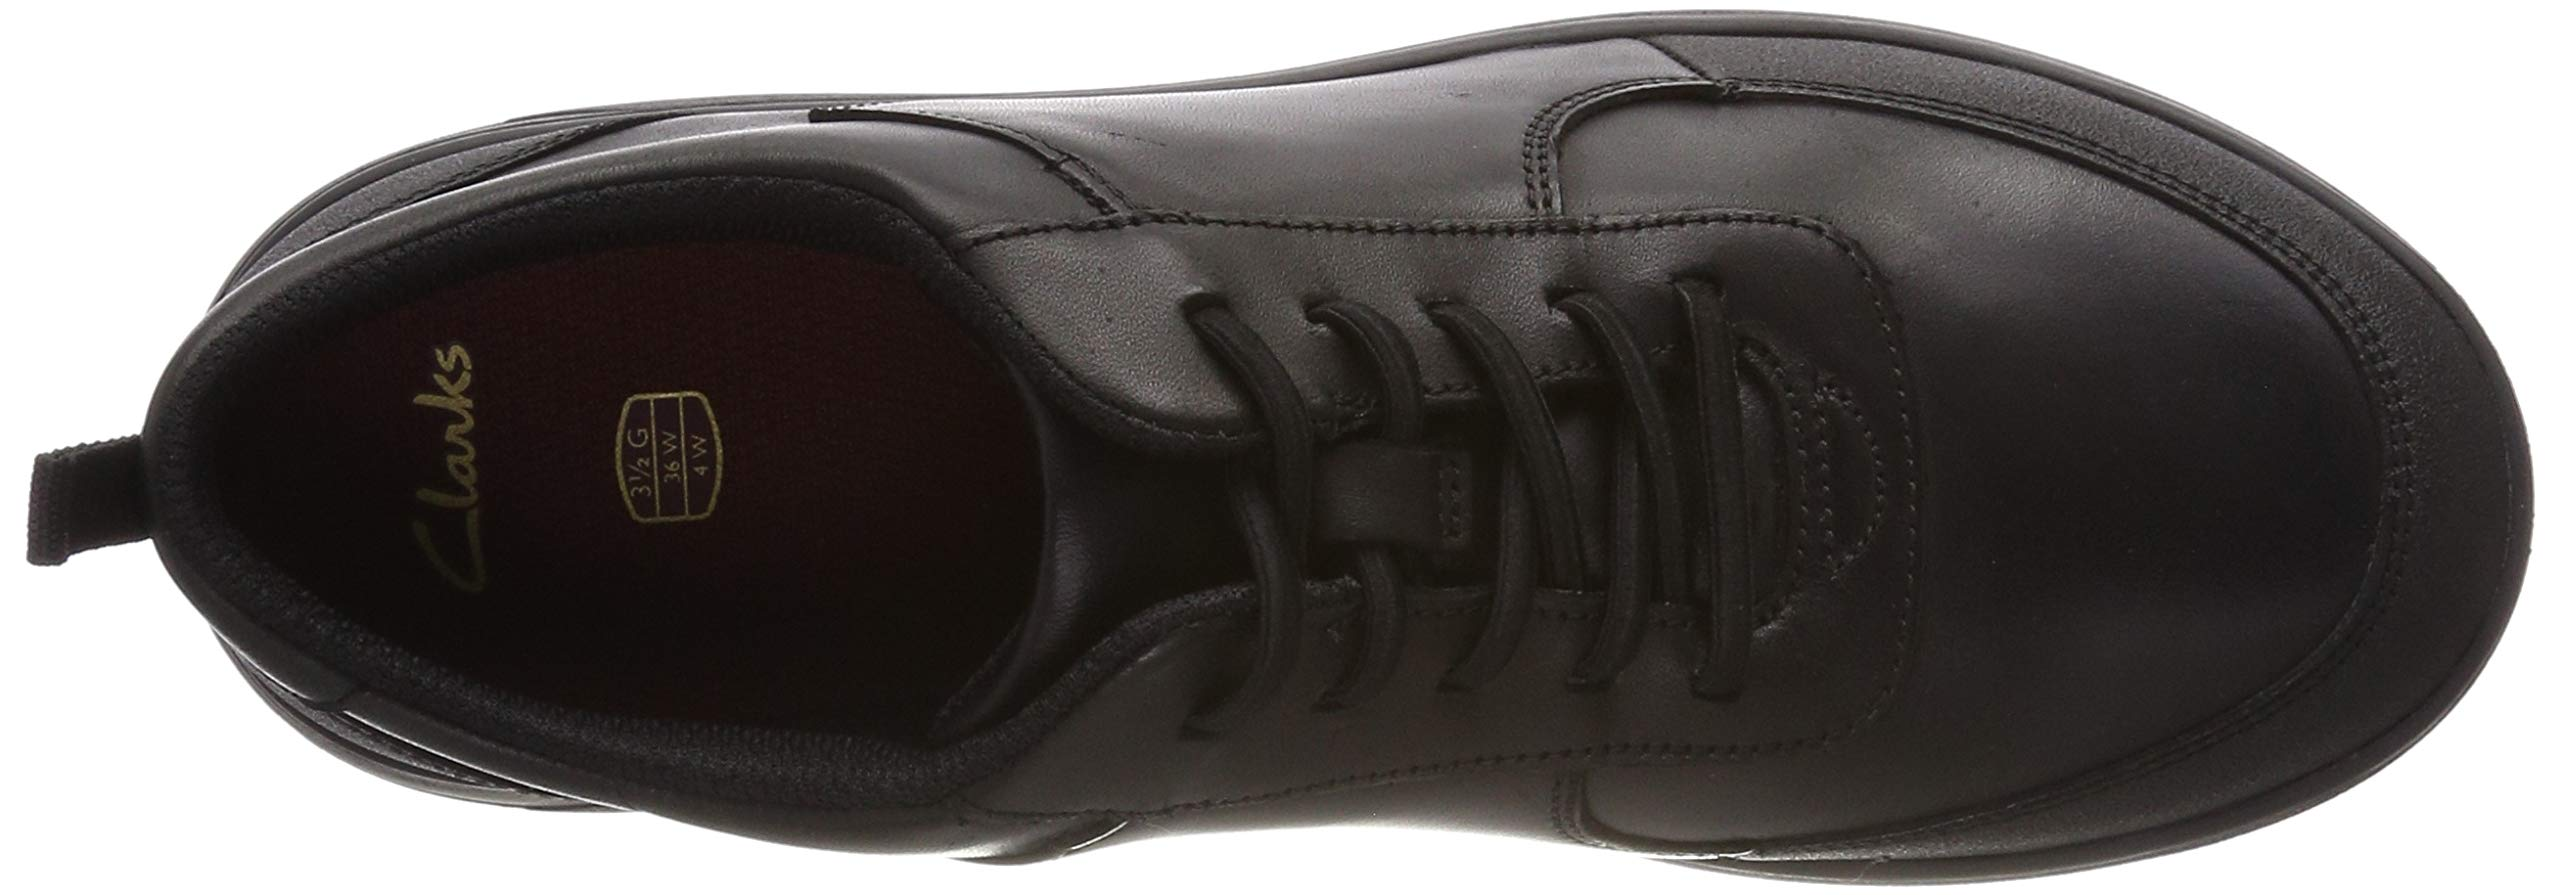 CLARKS Boys' Scape Street Y Brogues, (Black Leather-), 3 UK by CLARKS (Image #7)